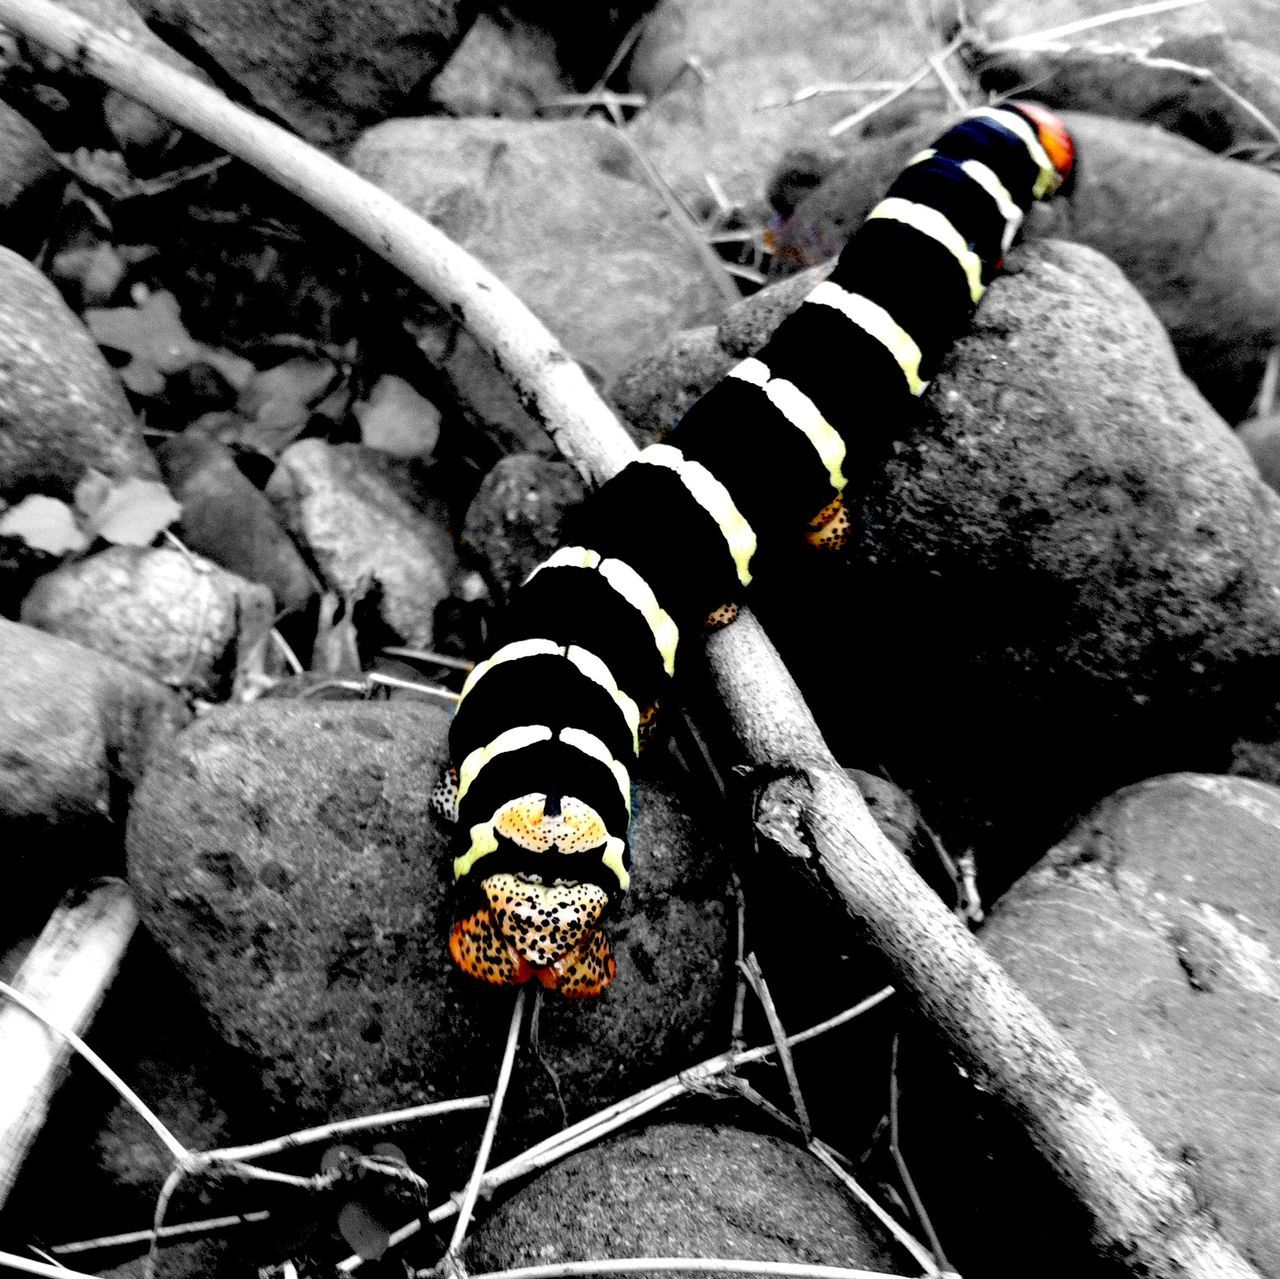 animal themes, one animal, animals in the wild, insect, animal wildlife, close-up, outdoors, no people, day, nature